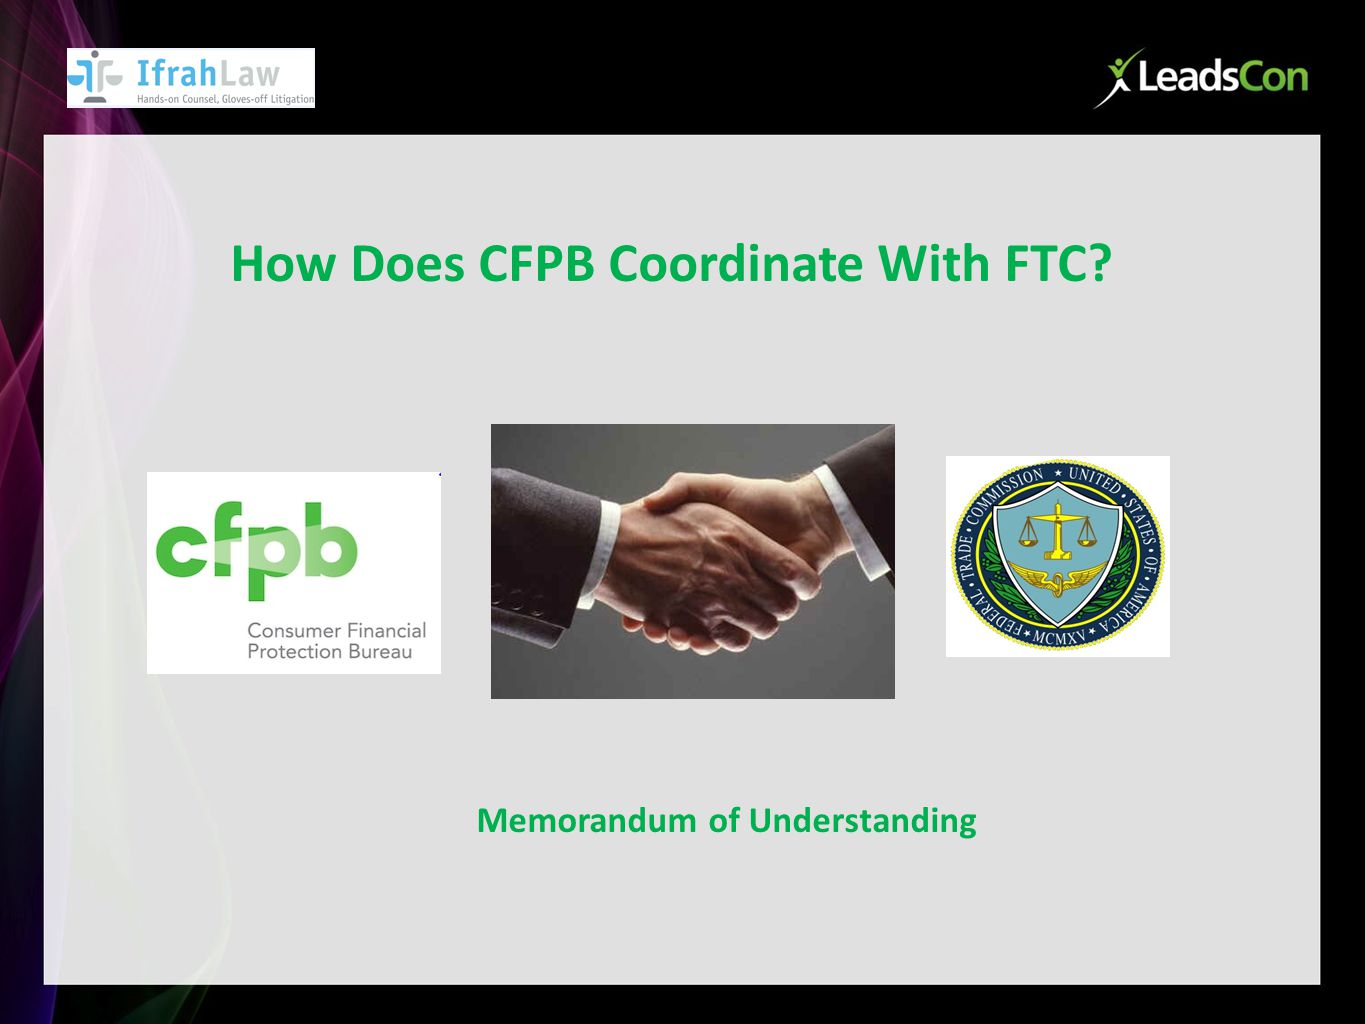 How Does CFPB Coordinate With FTC Memorandum of Understanding